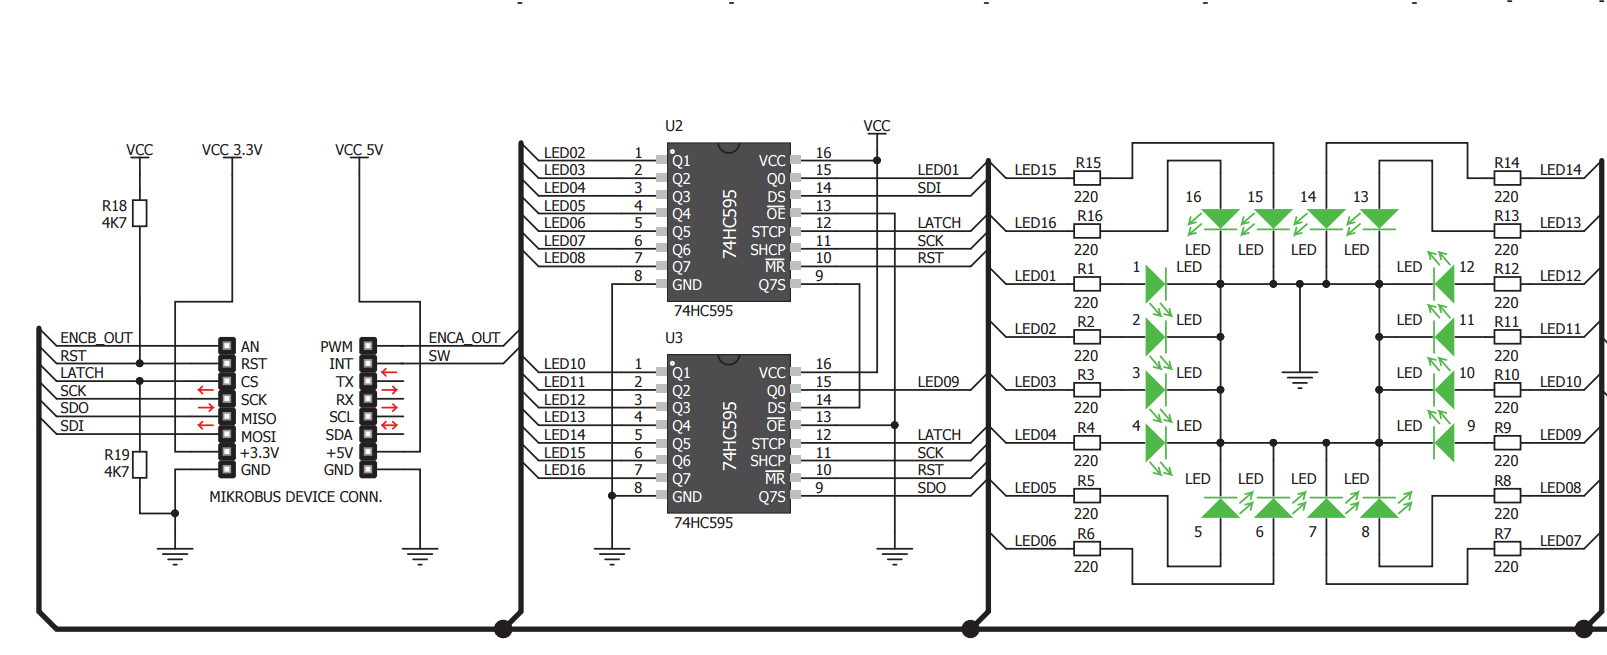 Leds And Bit Shifting A Shift Register Tutorial Plc Latched Circuit Example